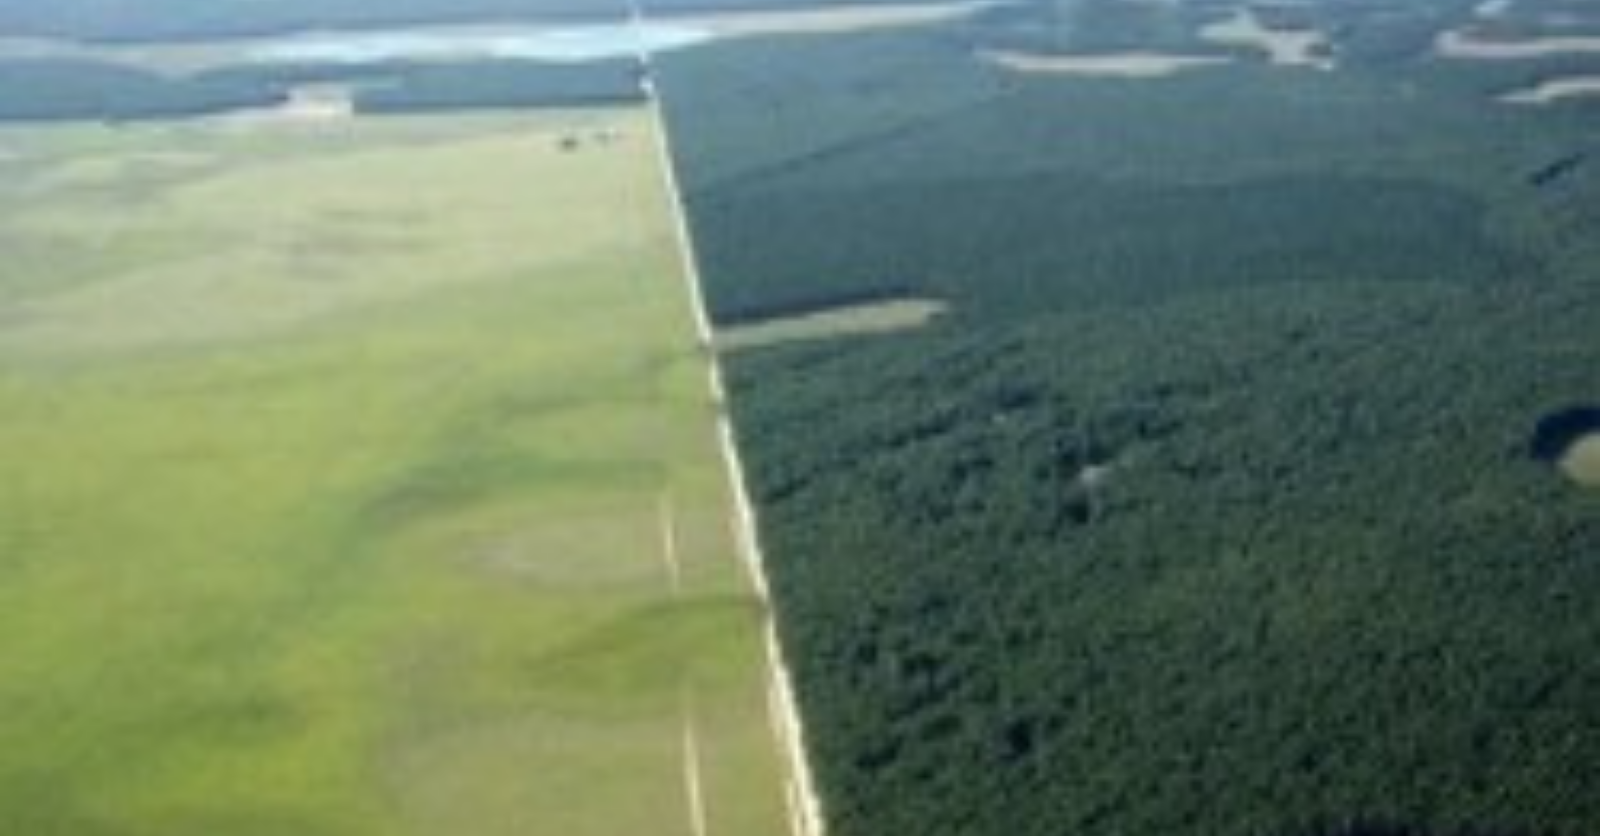 Civil Society Letter Concerning Harvard University Land and Natural Resources Investments